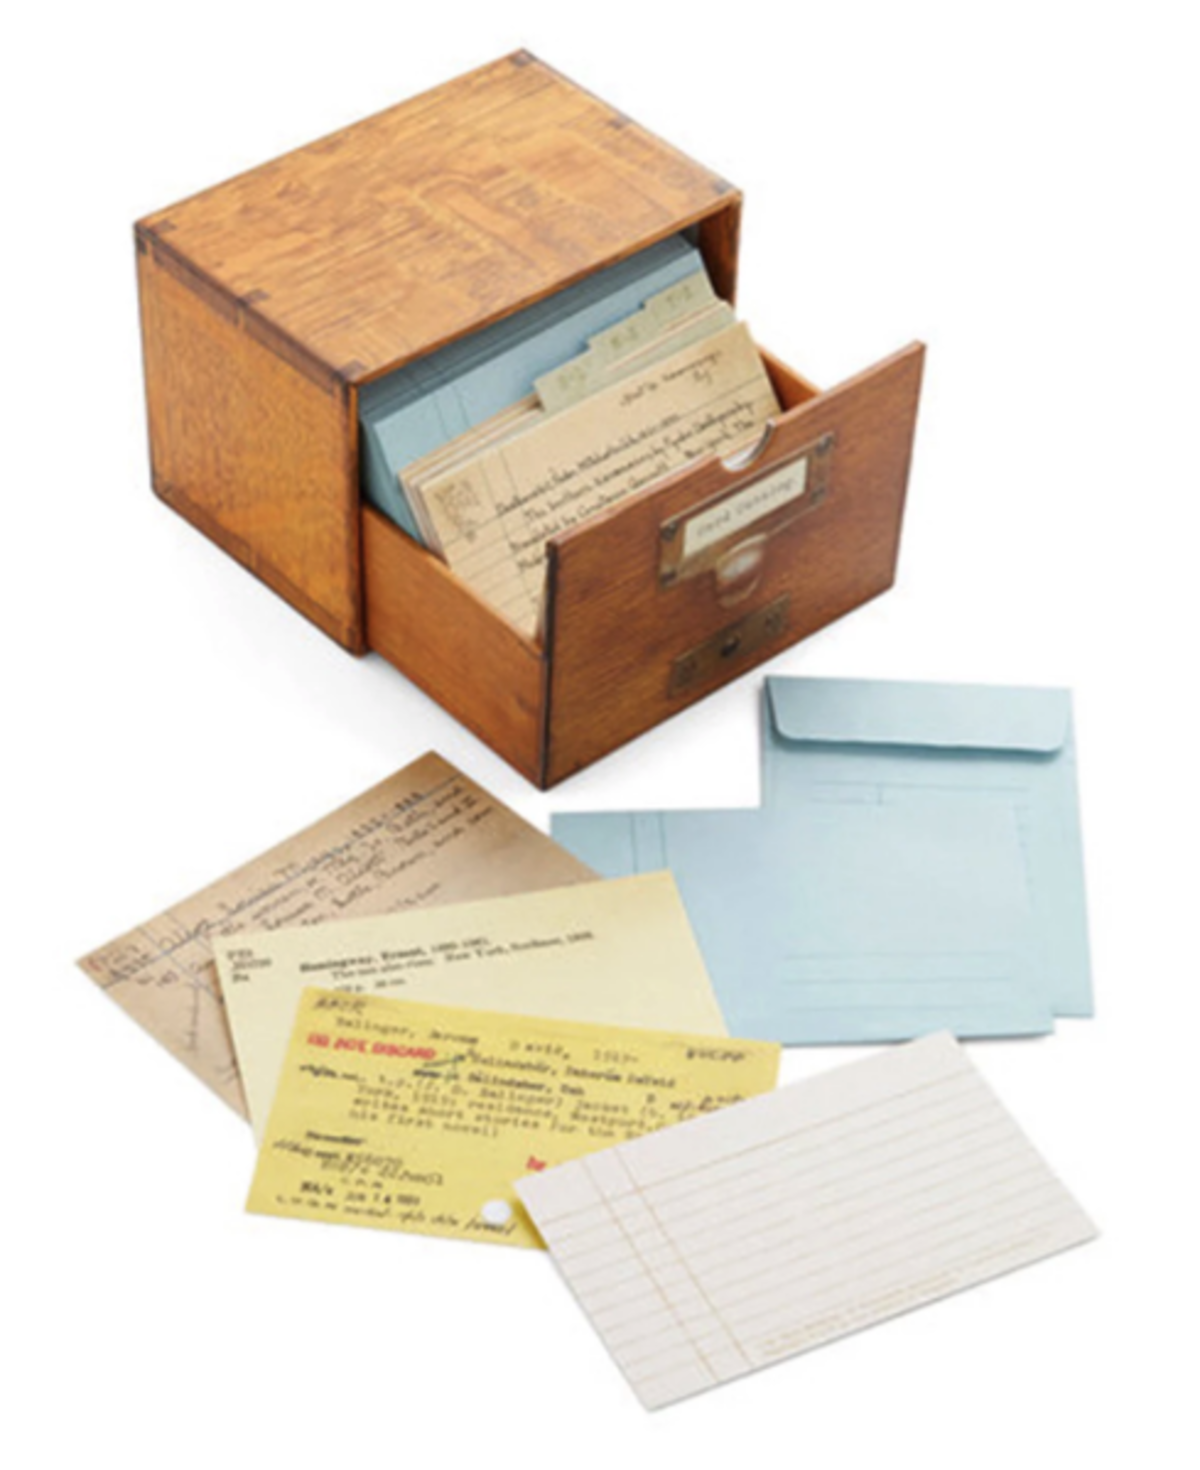 card catalog note cards and wooden storage box